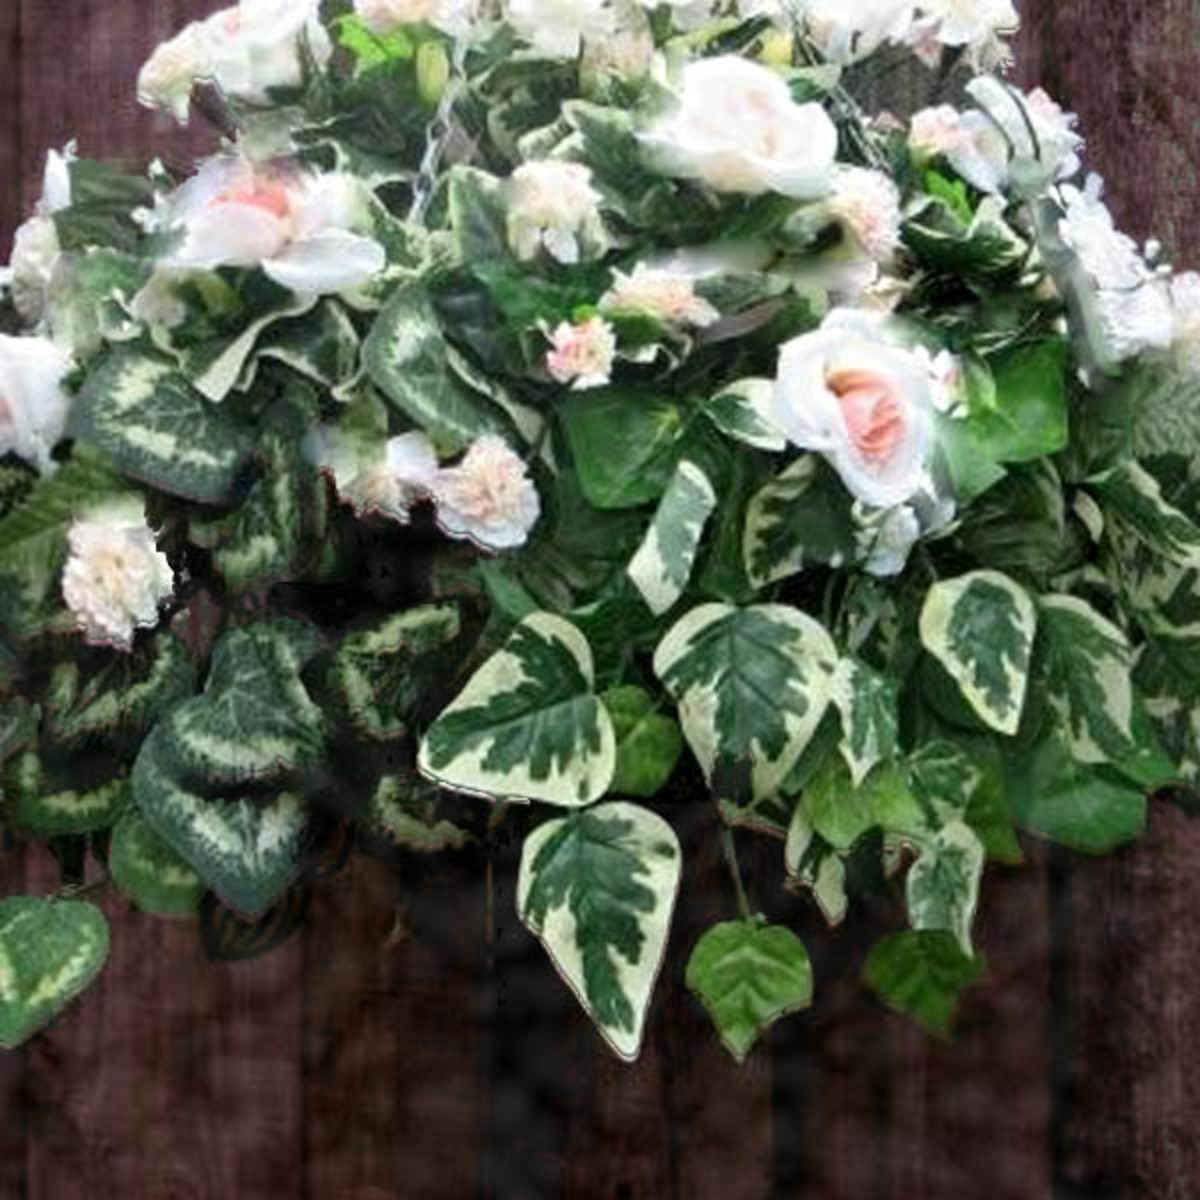 Using a variety of ivy species can make a very creative arrangement for any hanging basket!